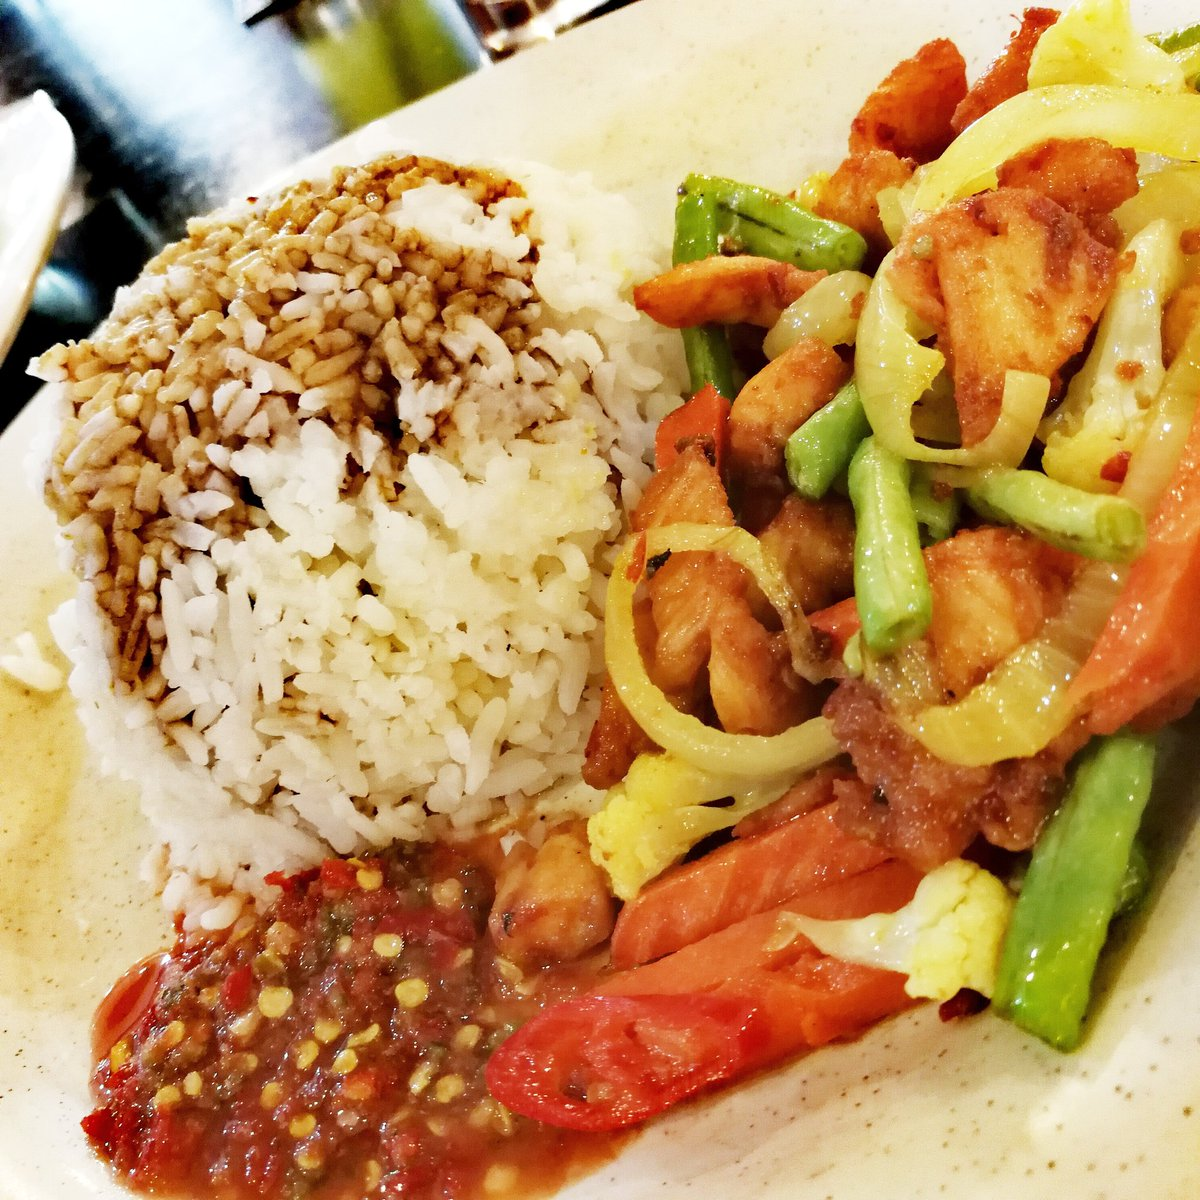 Lesung Batu Cafe On Twitter Our Set Nasi Ayam Goreng Kunyit Consists Of Ayam Goreng Kunyit Sup Kosong Rice With Kicap Kipas Udang And Our Sambal Belacan Power All For Just Rm6